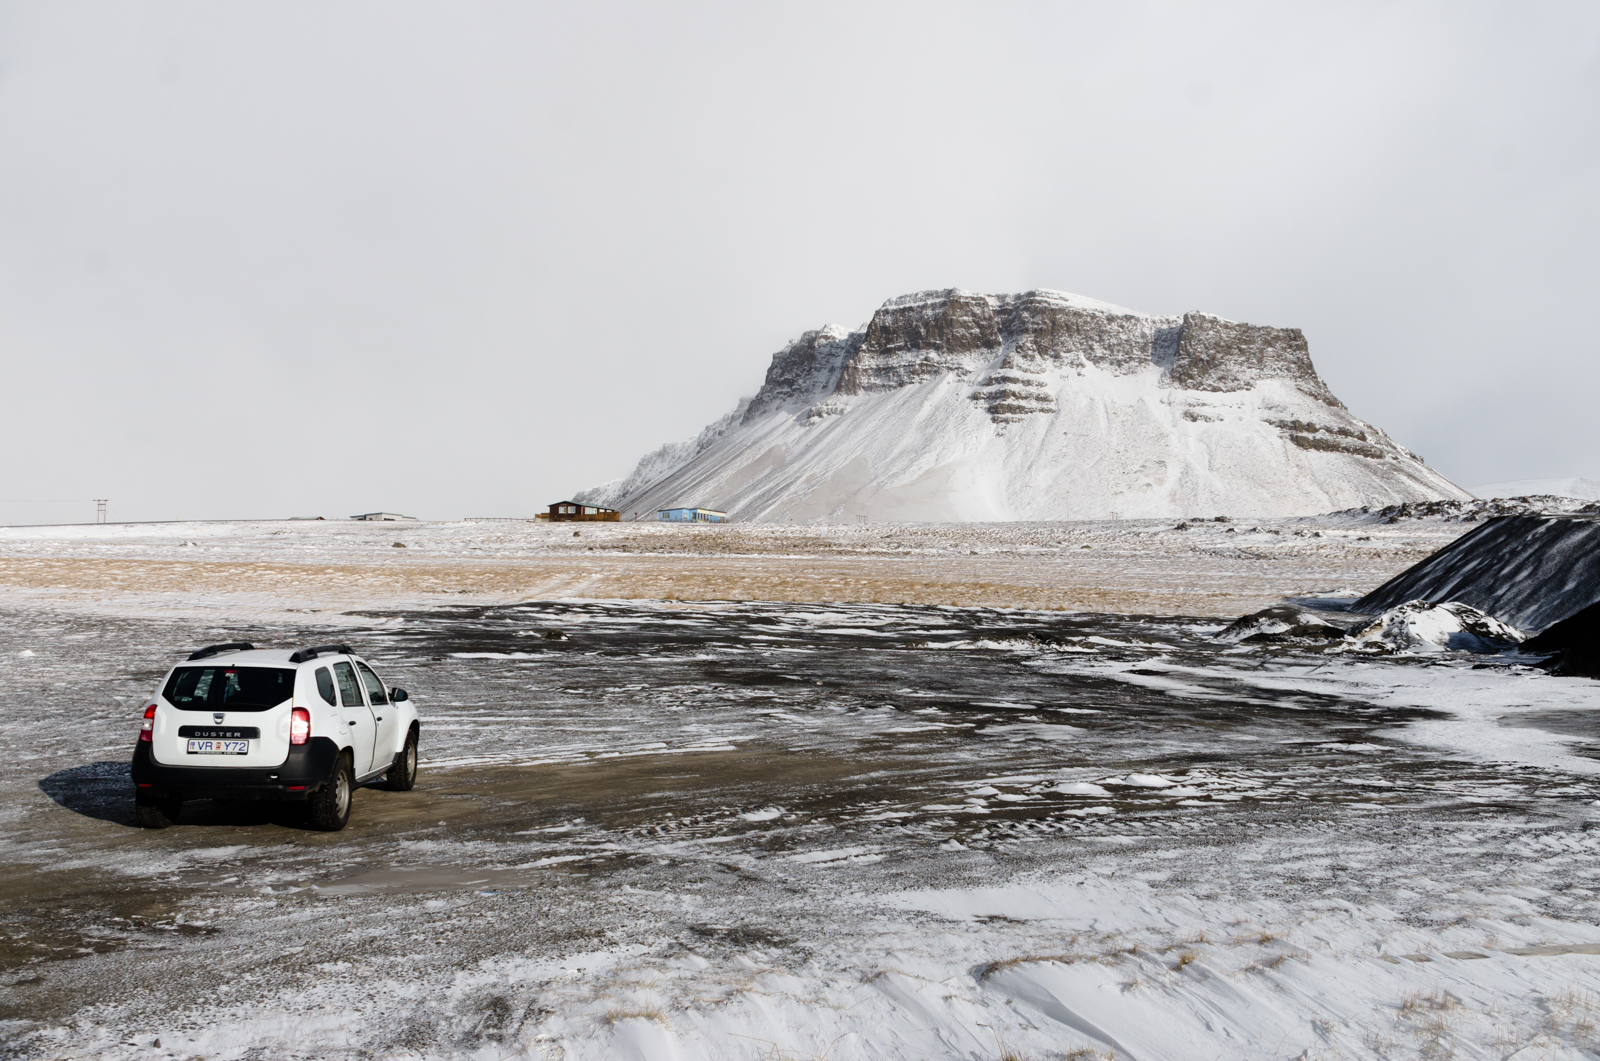 A 4x4 car parked in a vast field in front of a snow covered mountain in Iceland